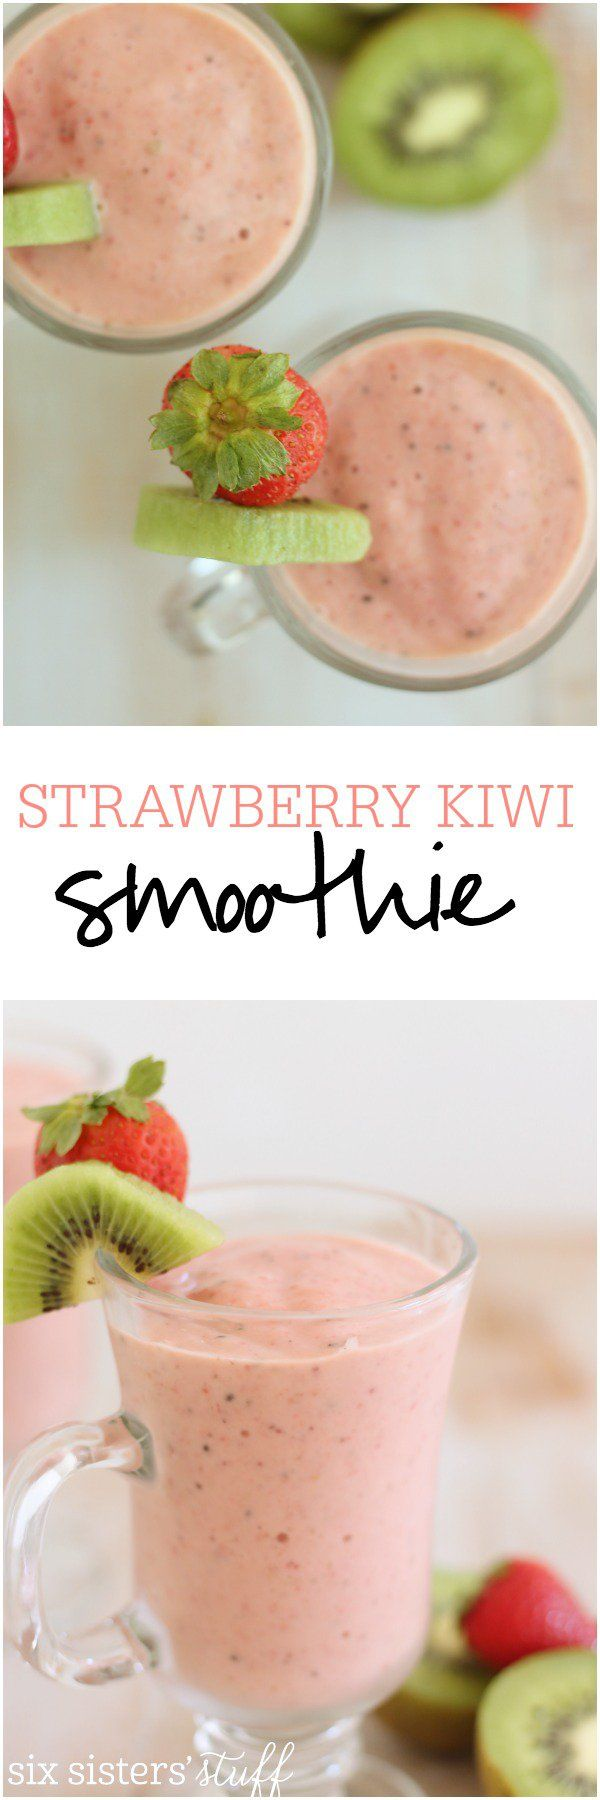 This simple strawberry kiwi smoothie makes a great snack or delicious breakfast!